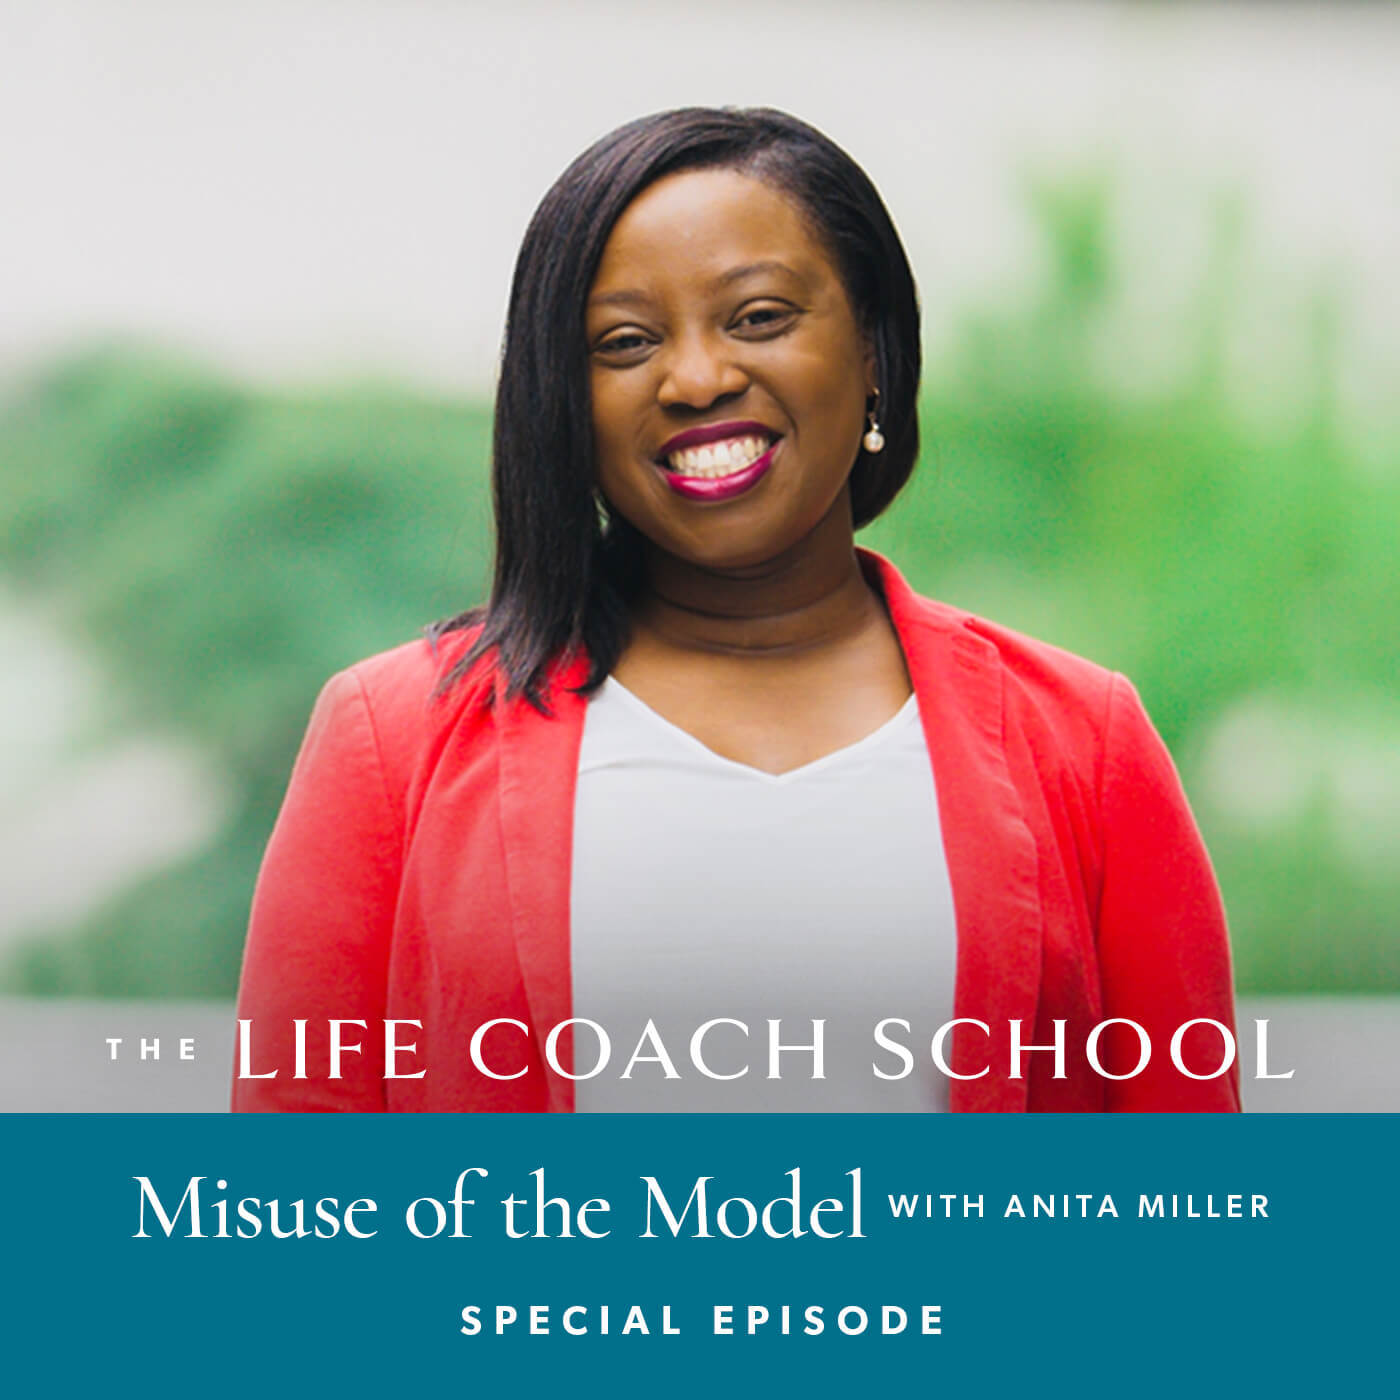 Misuse of the Model with Anita Miller (Special Episode)